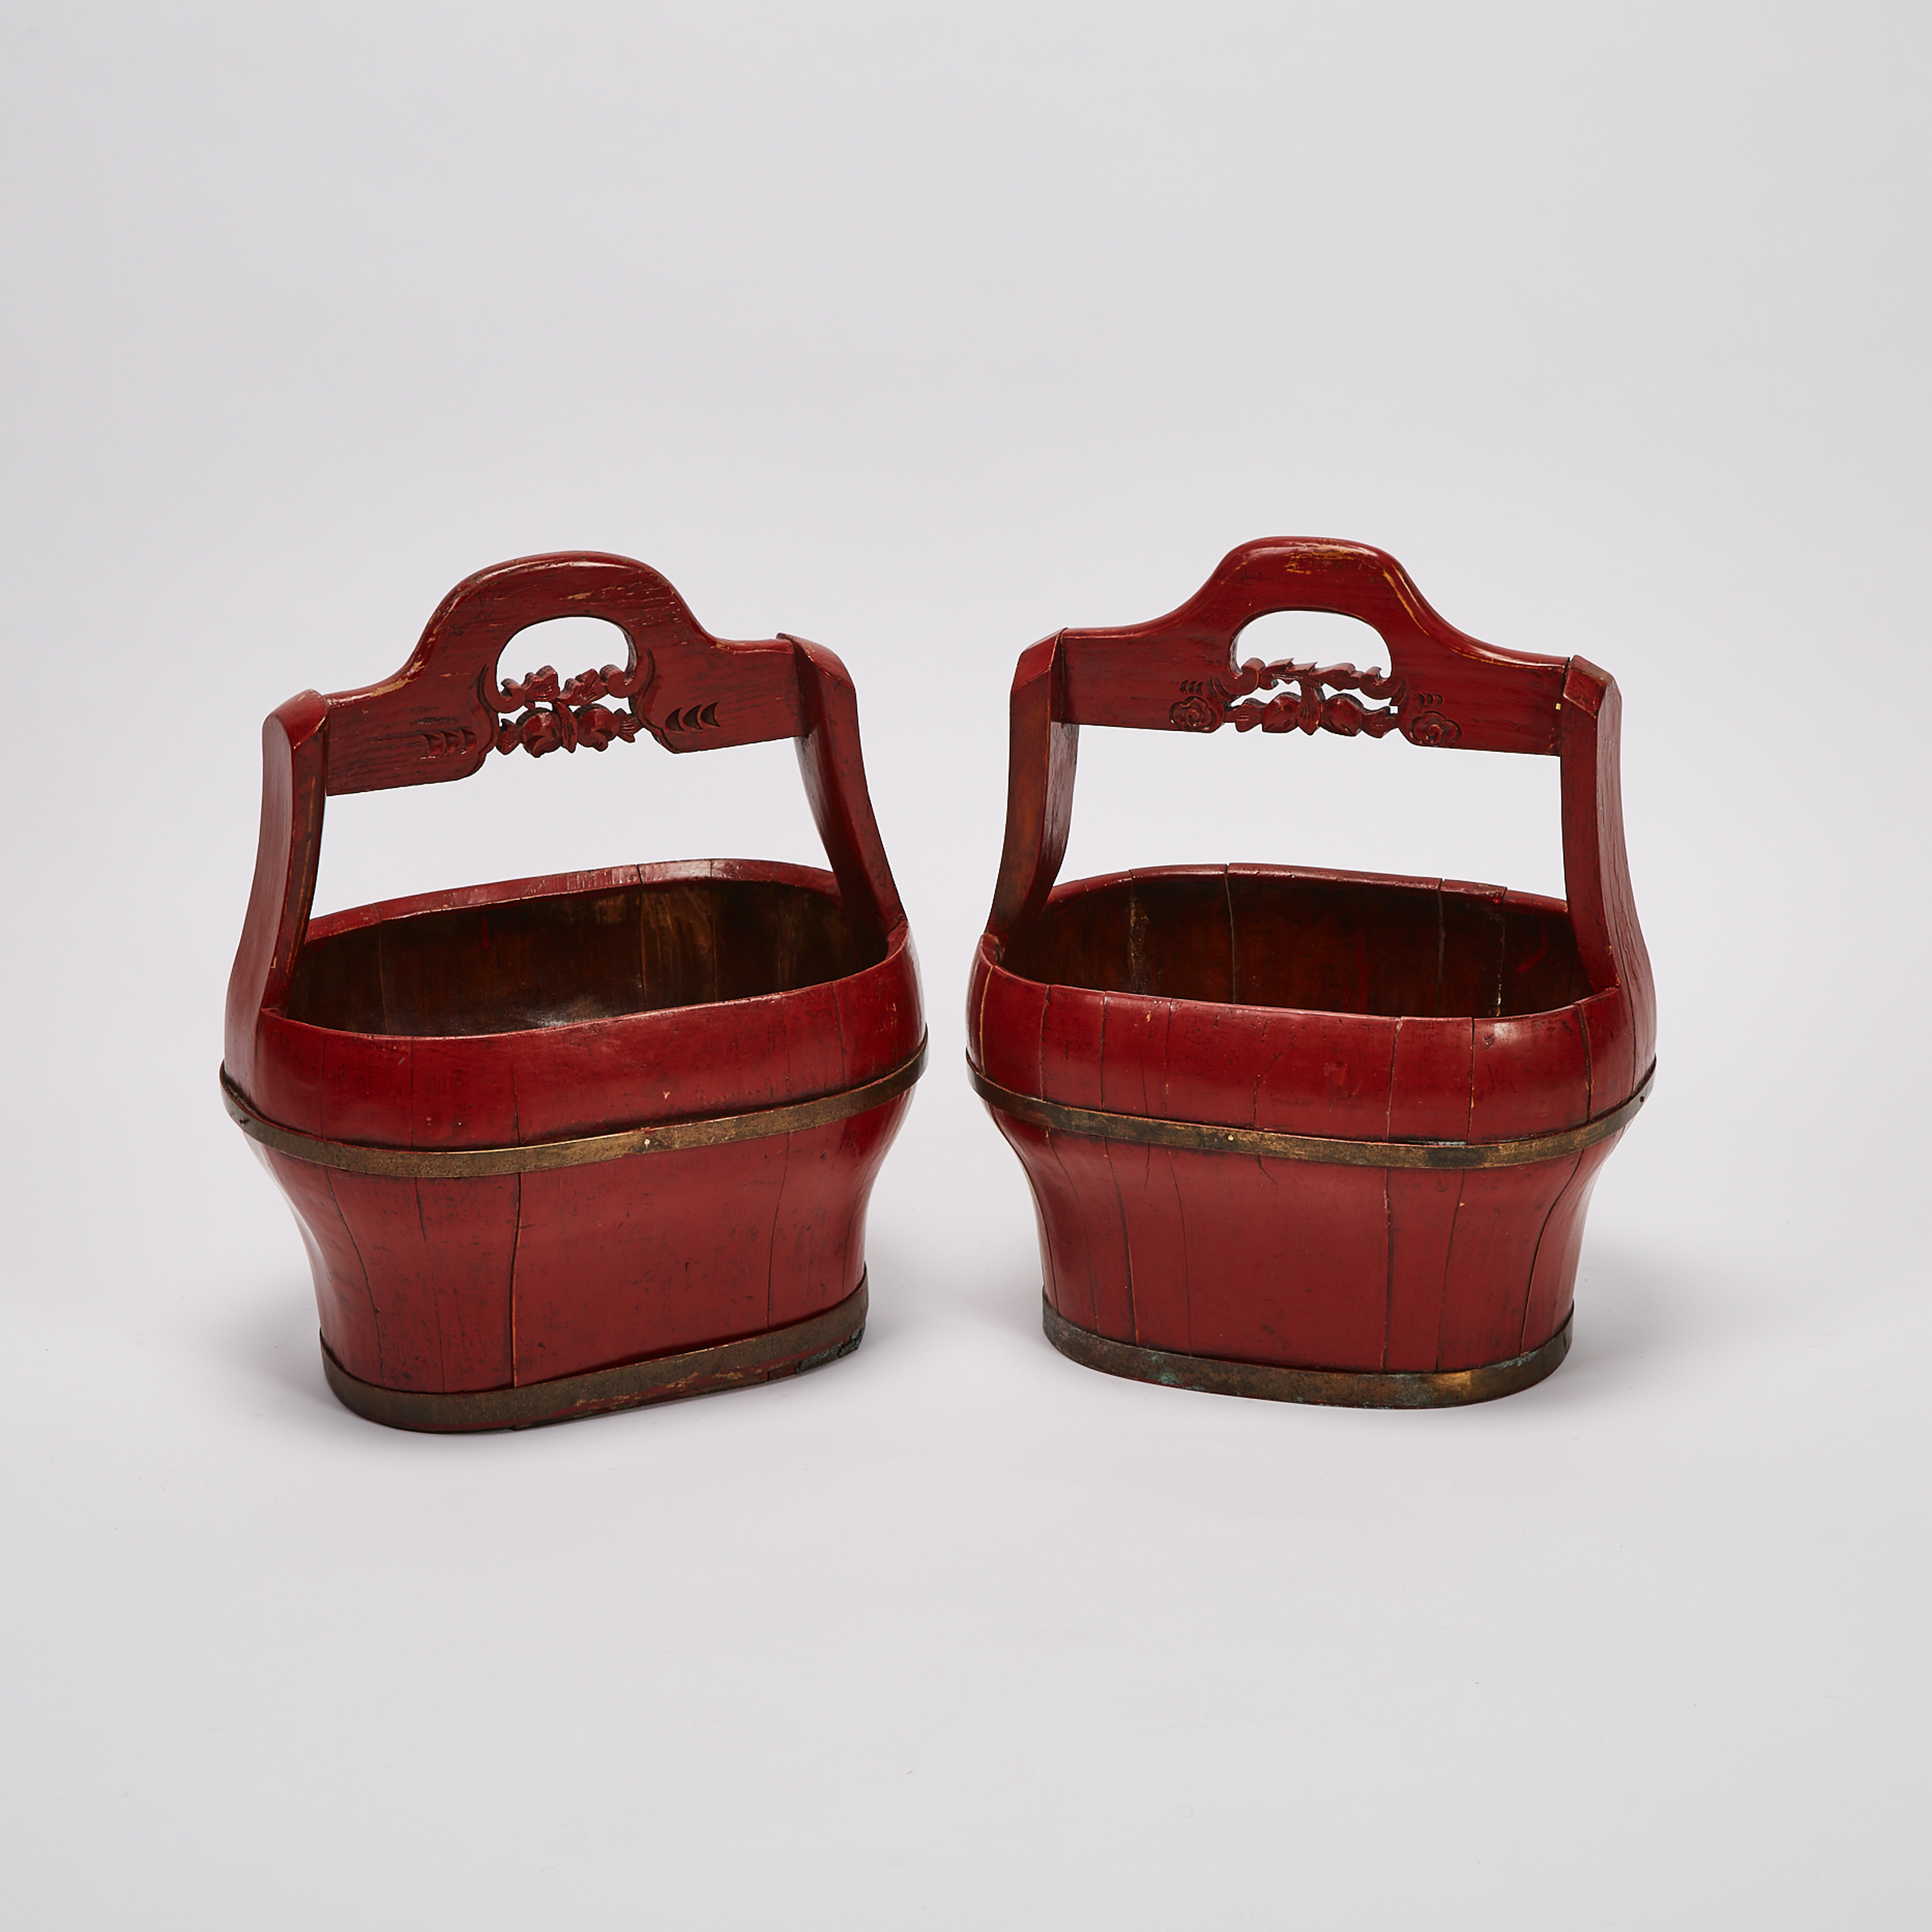 A Pair of Chinese Red Lacquer Baskets, 19th Century